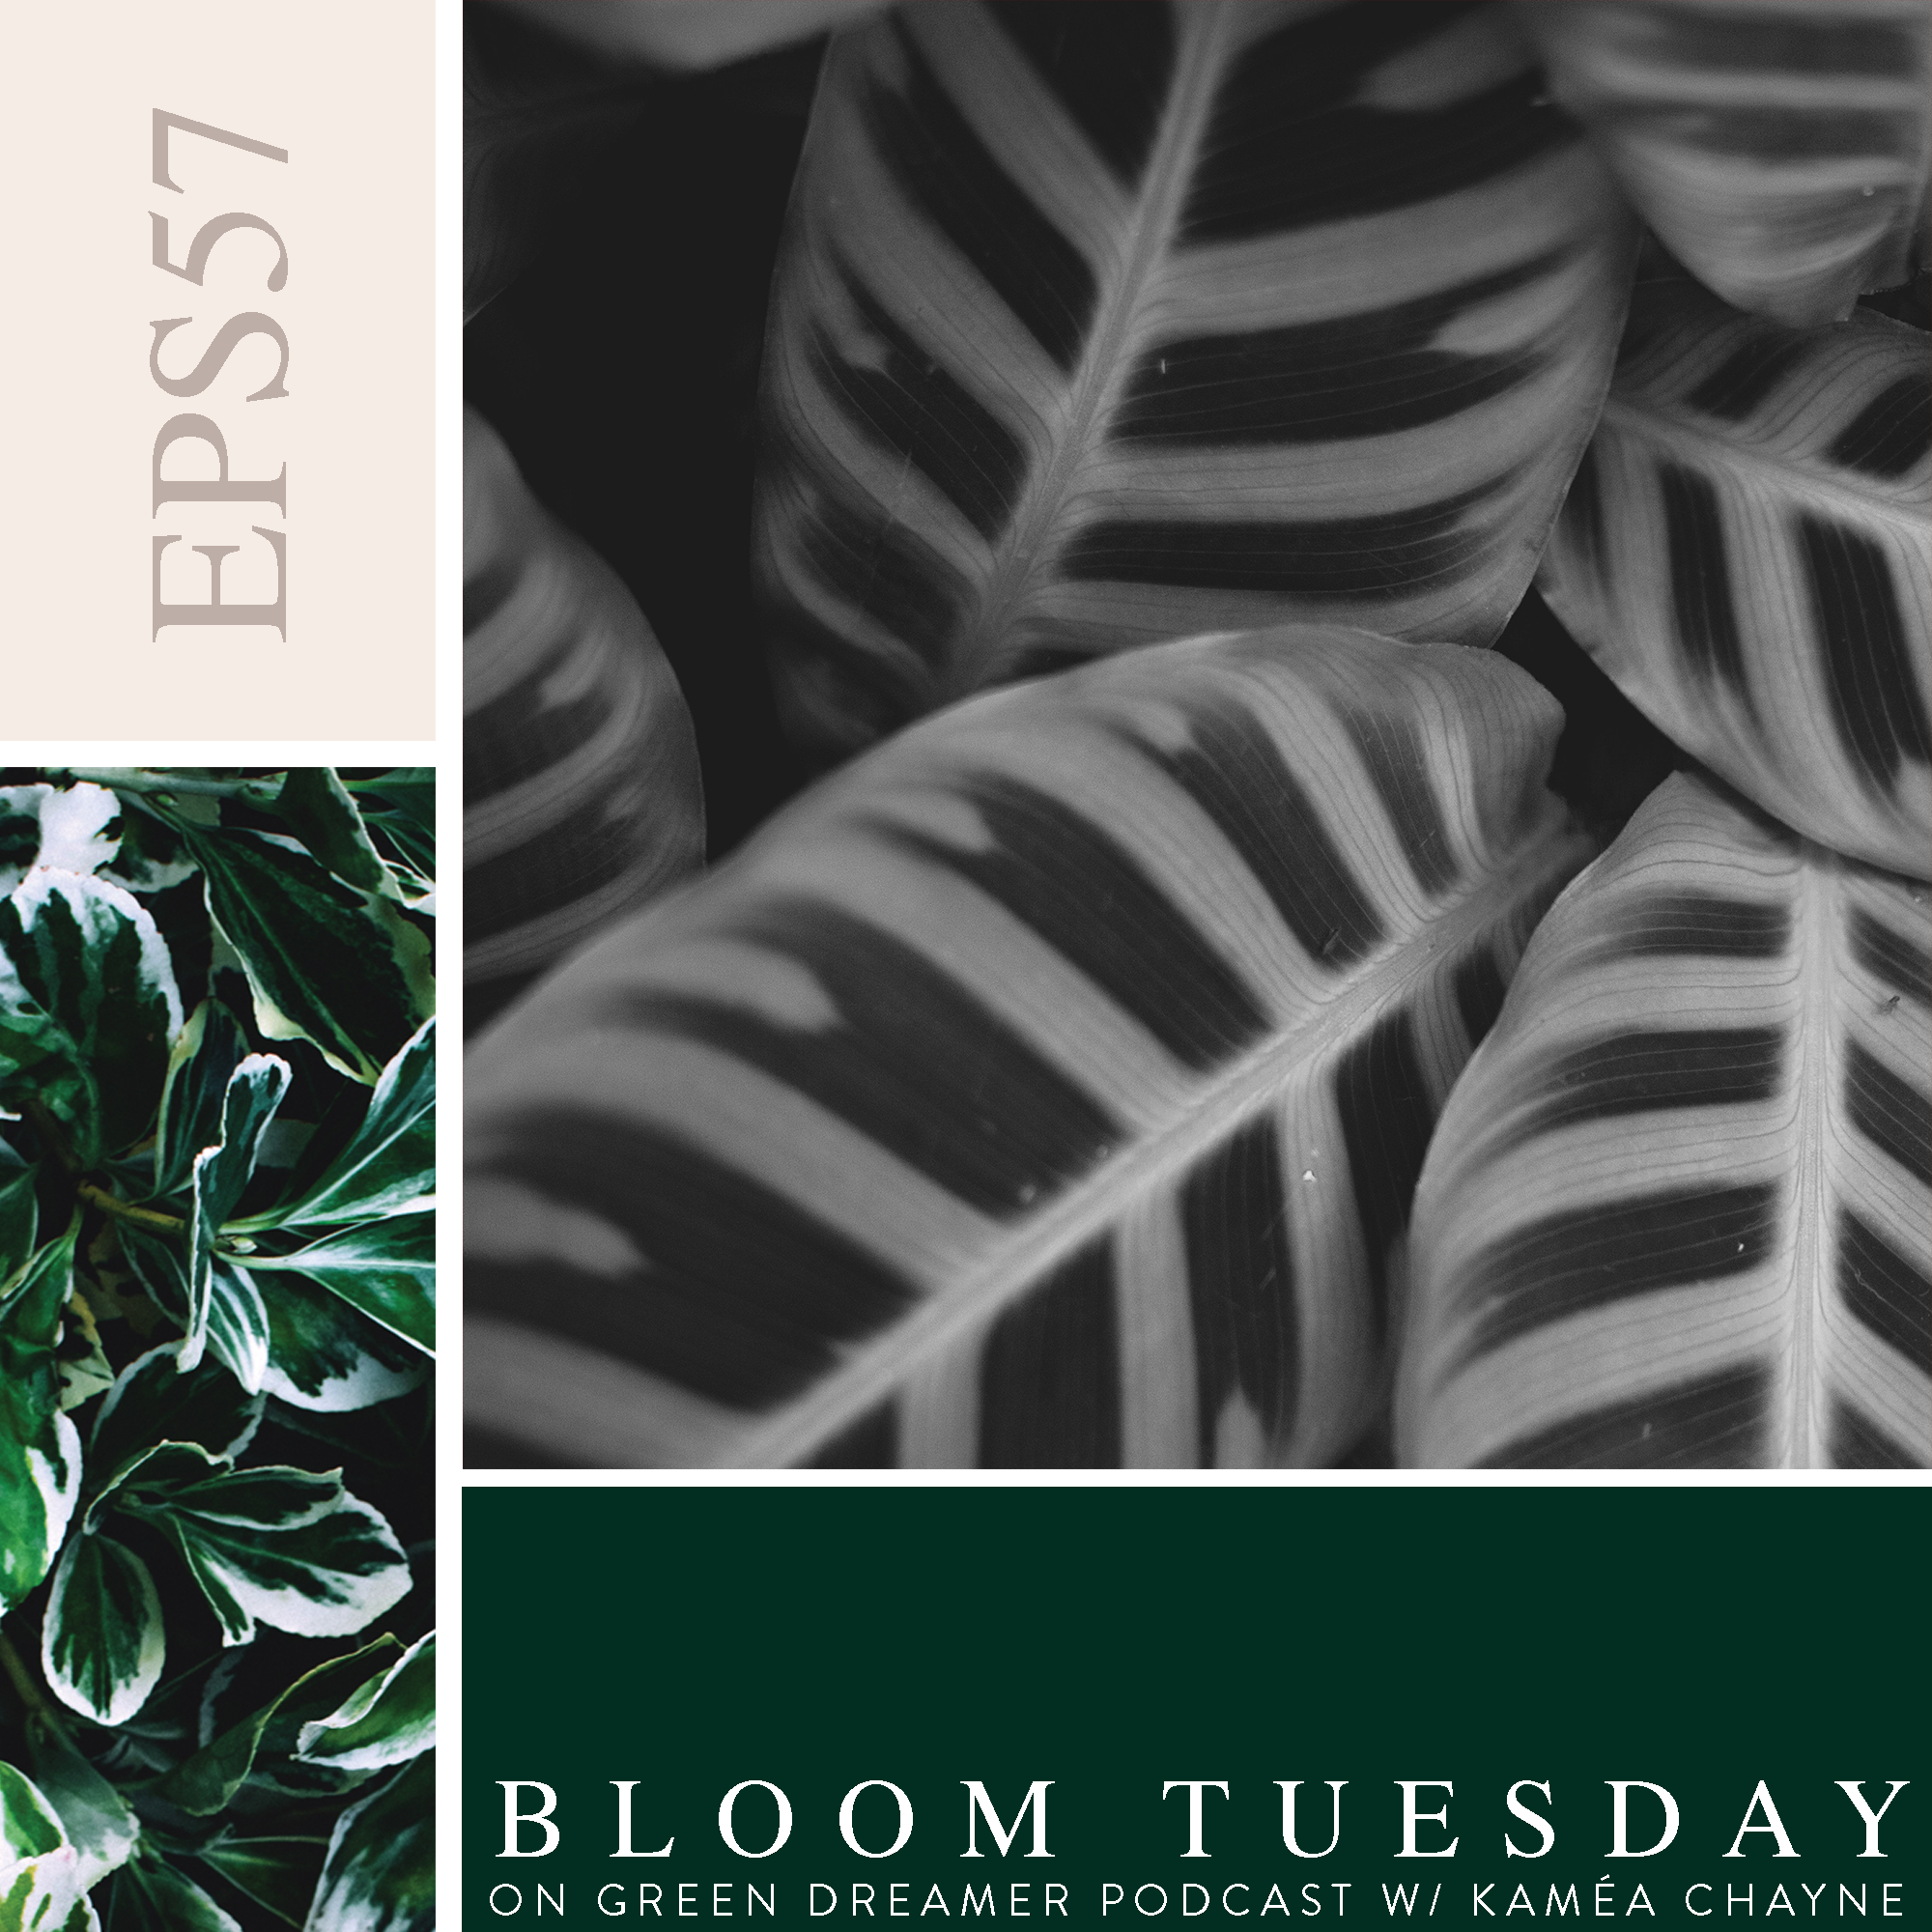 57) BLOOM TUESDAY